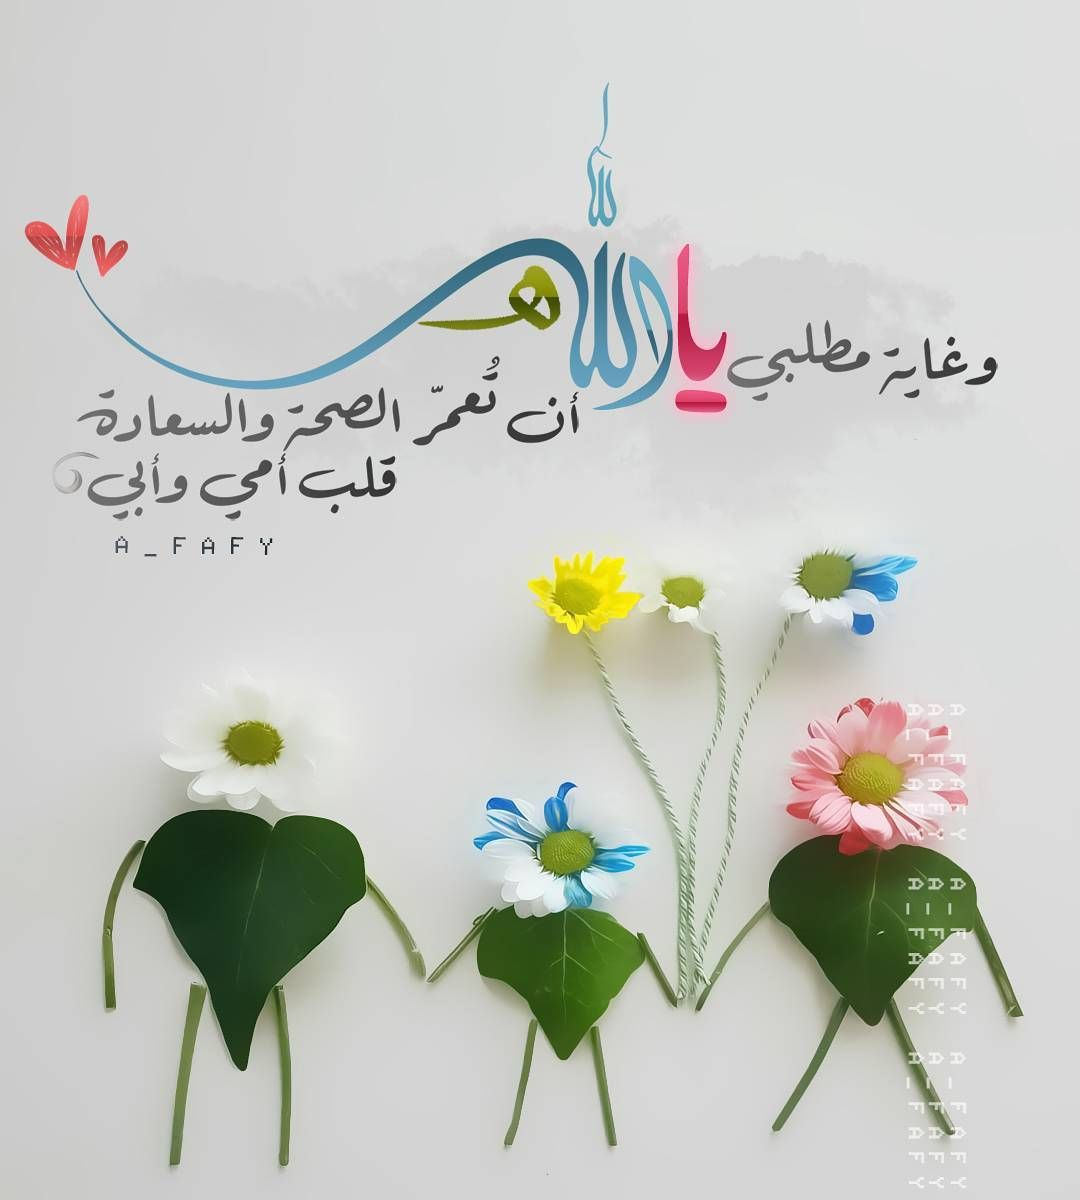 tomato muslim personals 1st place muslim matrimonials is the leading site for marriage minded muslims  worlwide includes photos and chat.